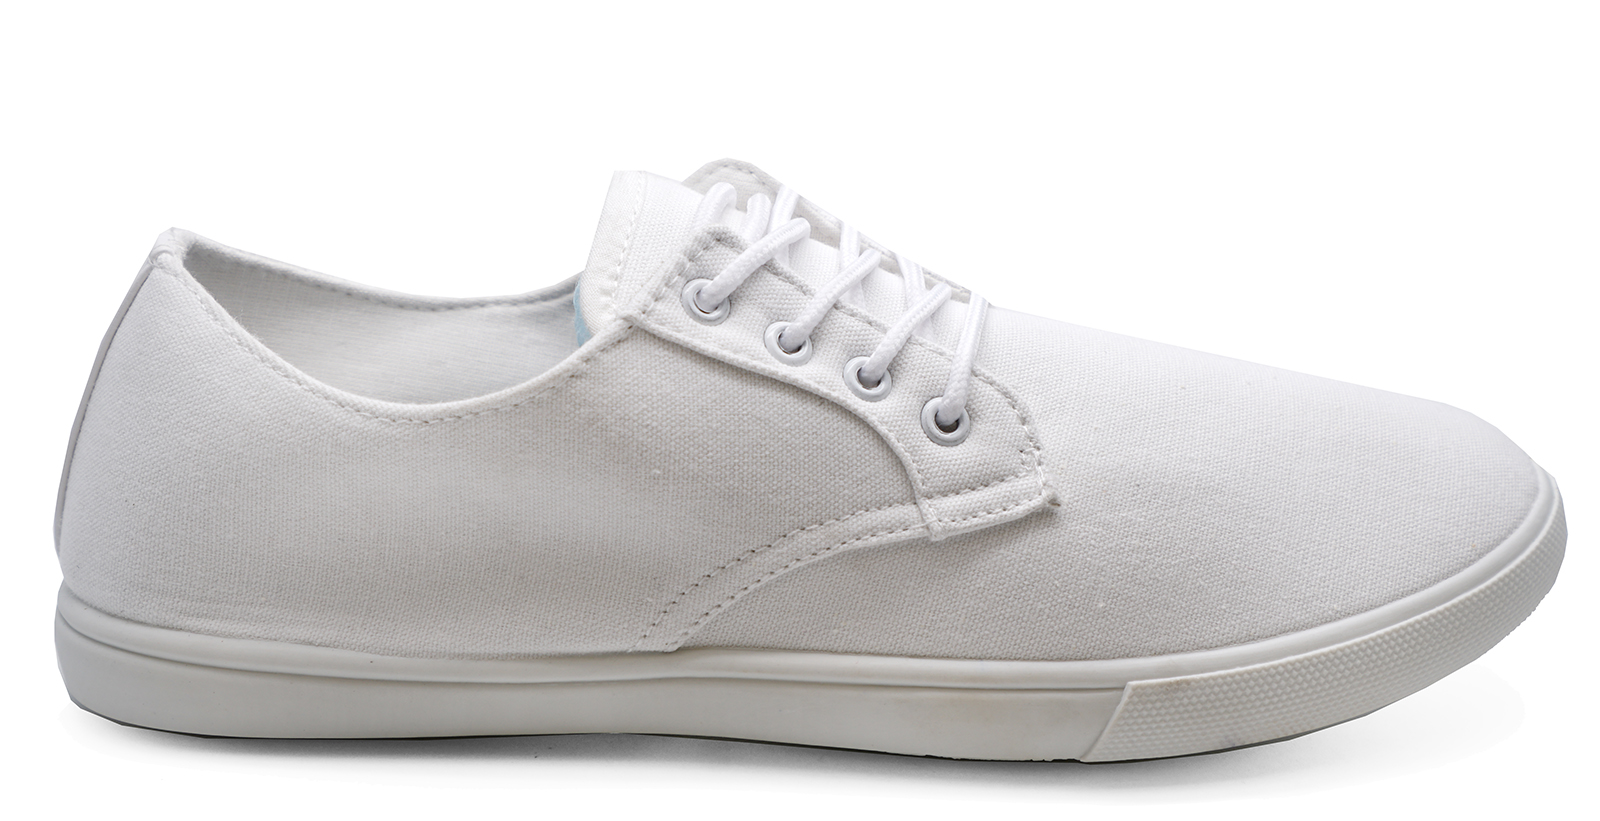 MENS-LACE-UP-WHITE-CANVAS-FLAT-TRAINER-PLIMSOLL-PUMPS-CASUAL-SHOES-SIZES-6-12 thumbnail 15